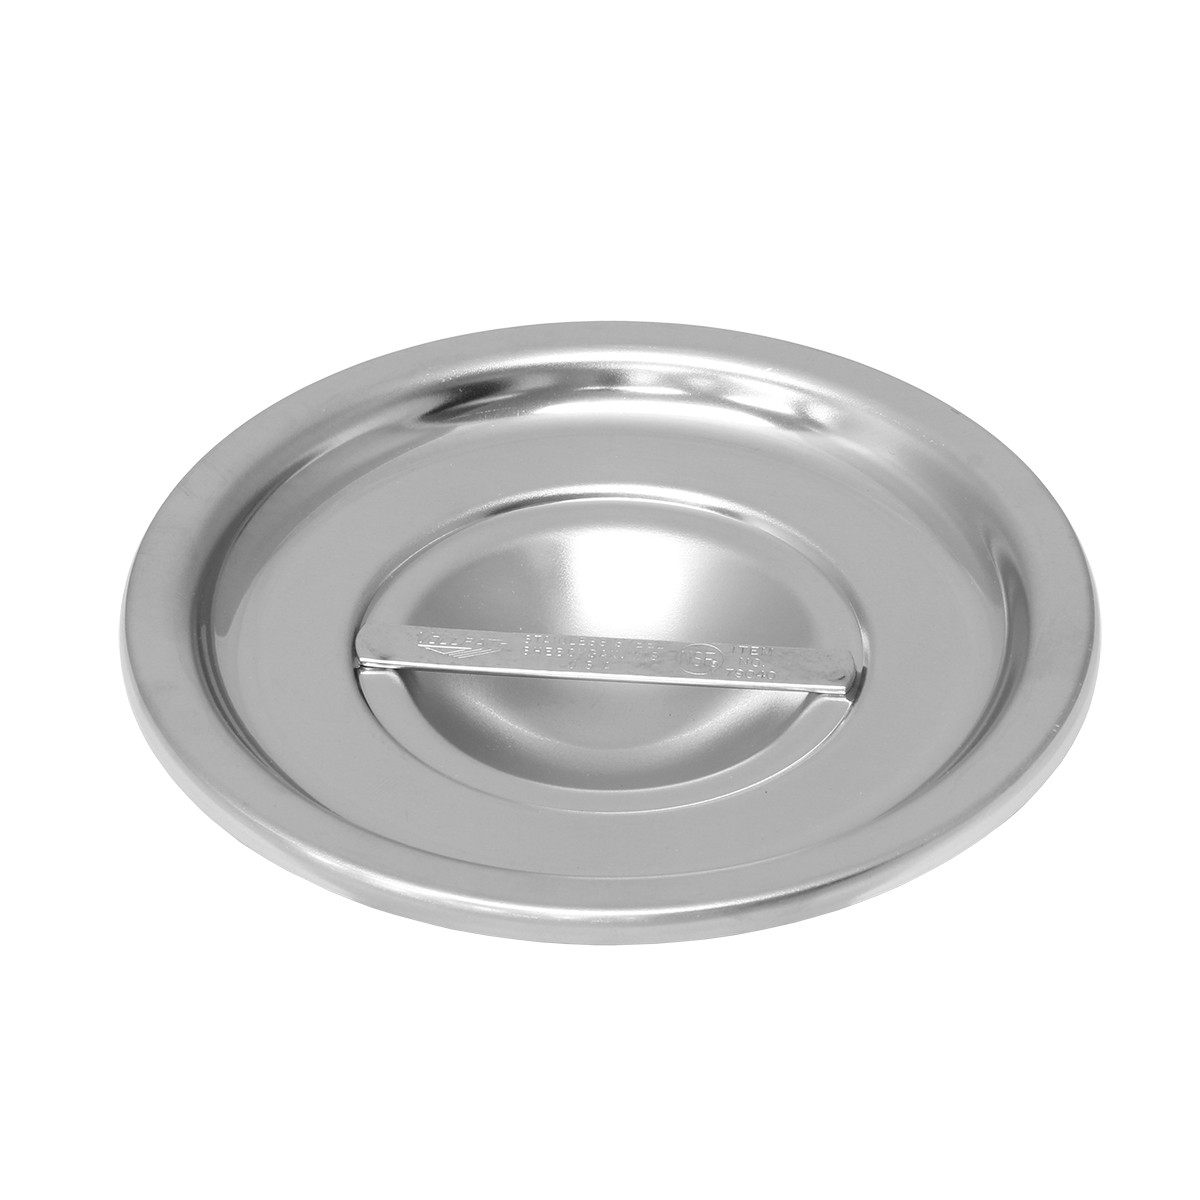 Stainless Steel Covers - 6.125 Qts